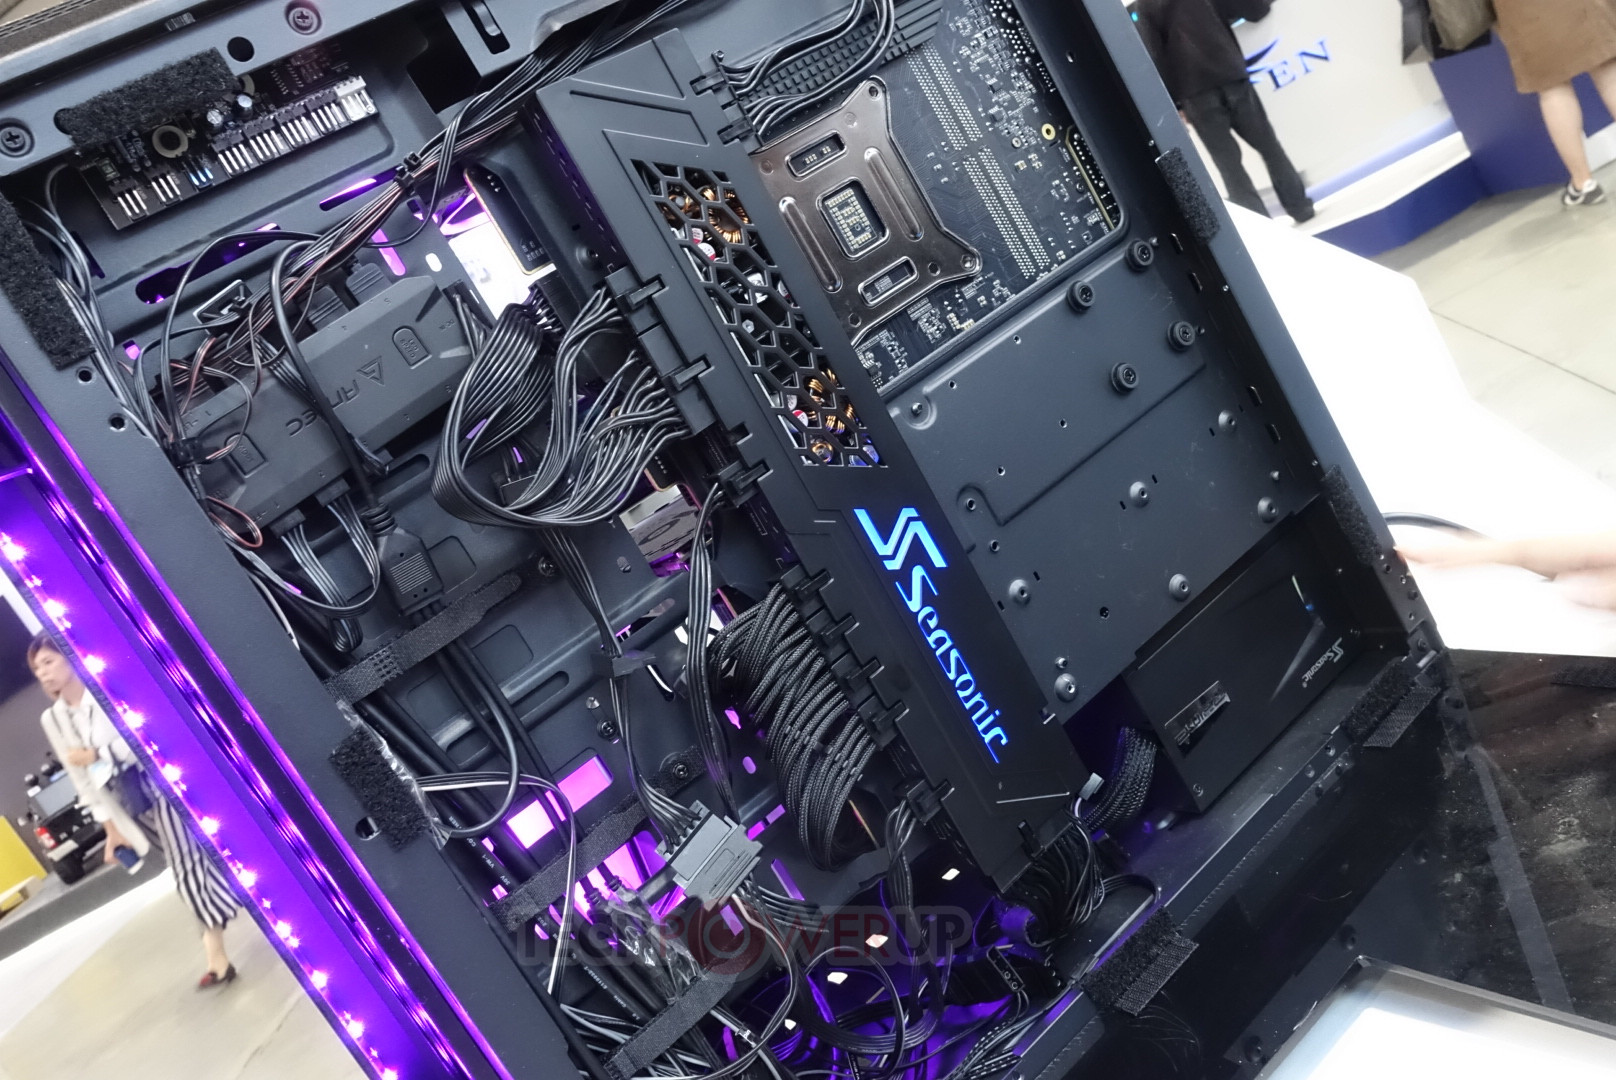 Seasonic Connect A Godsend For Cable Management Novices